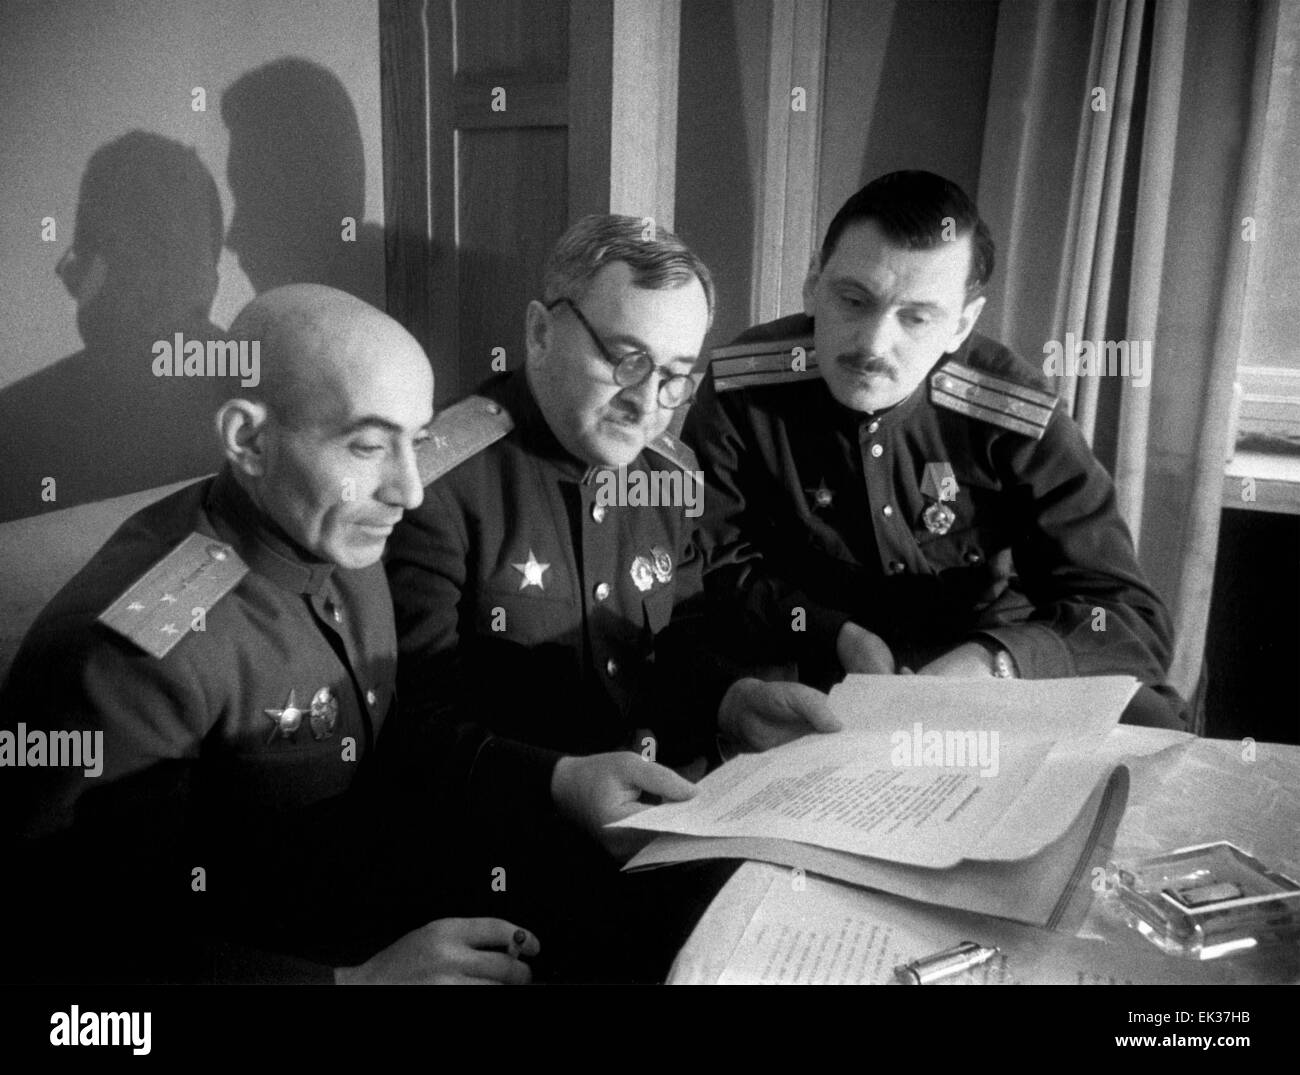 Authors of the Soviet anthem. L-R: writer Gabriel El-Registan, professor Alexander Alexandrov and poet Sergei Mikhalkov. - Stock Image